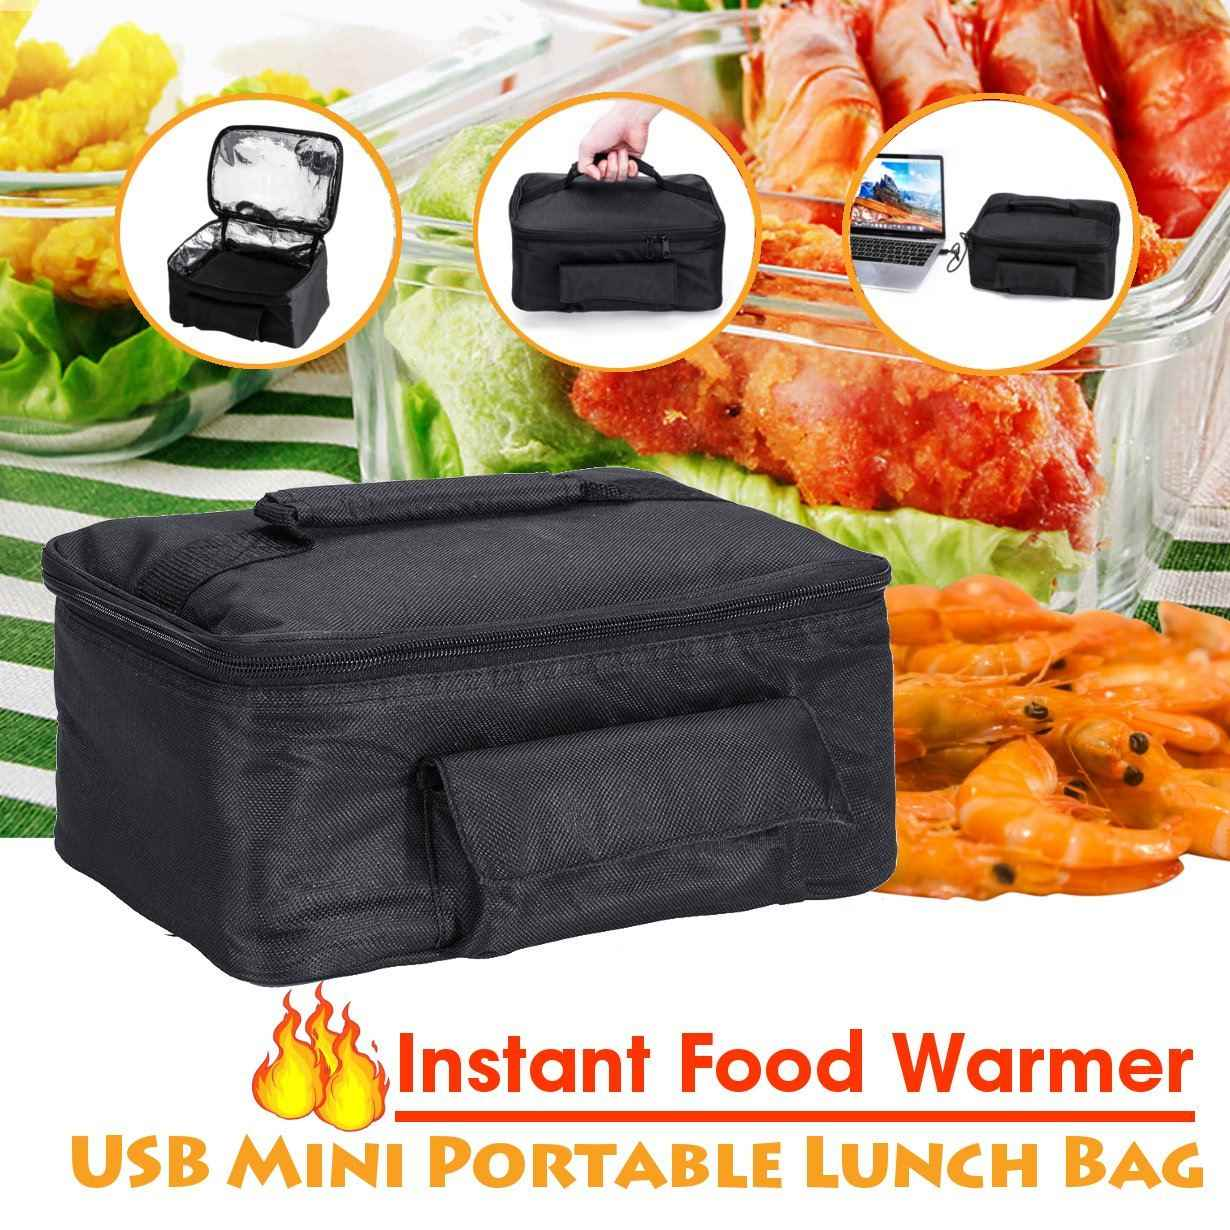 USB Mini Personal Portable Lunch Oven Bag Instant Food Heater Warmer Electric Oven Heating Lunch Box Vehicle/Household